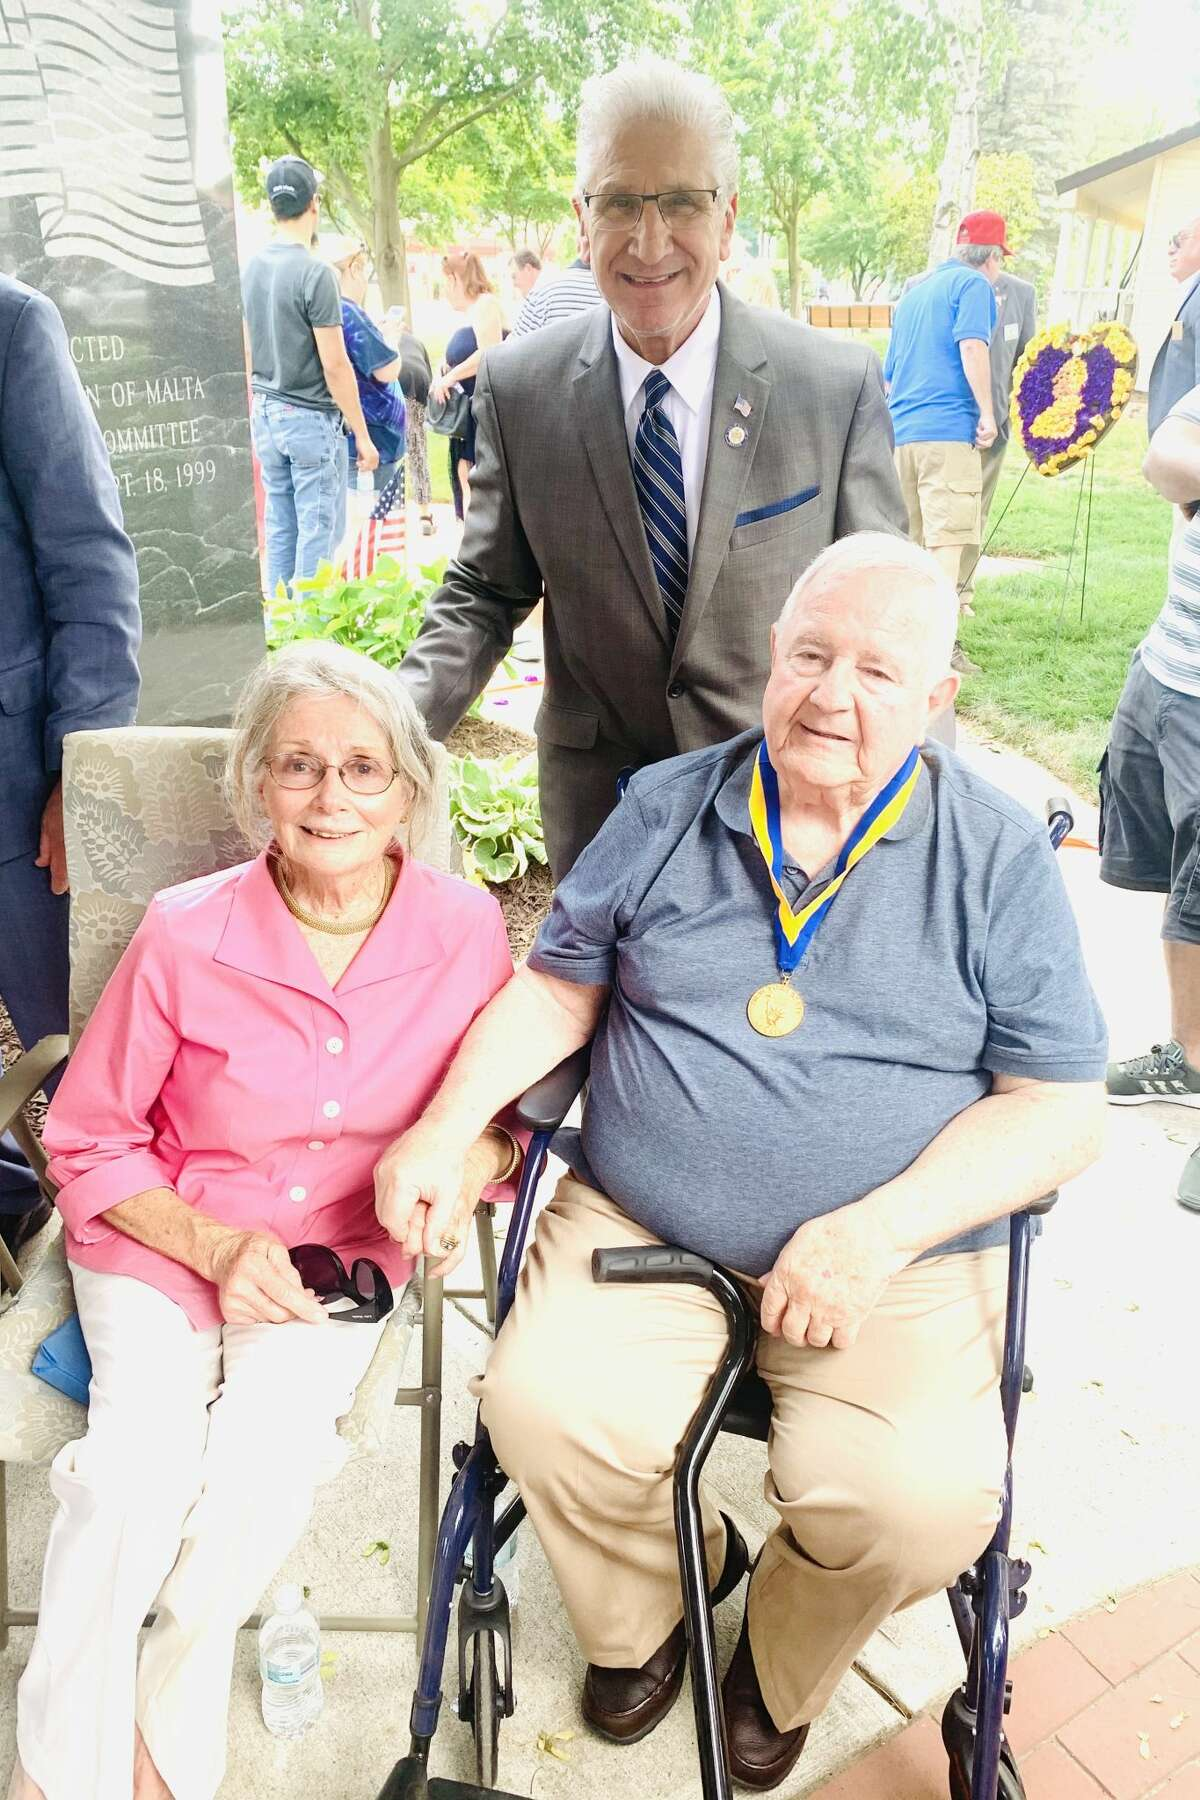 State Sen. Jim Tedisco, R-Glenville, presented Capt. David Wallingford with the state Senate Liberty Medal on Sunday, June 6, 2021. Wallingford, right, is pictured here with his wife, Helene.